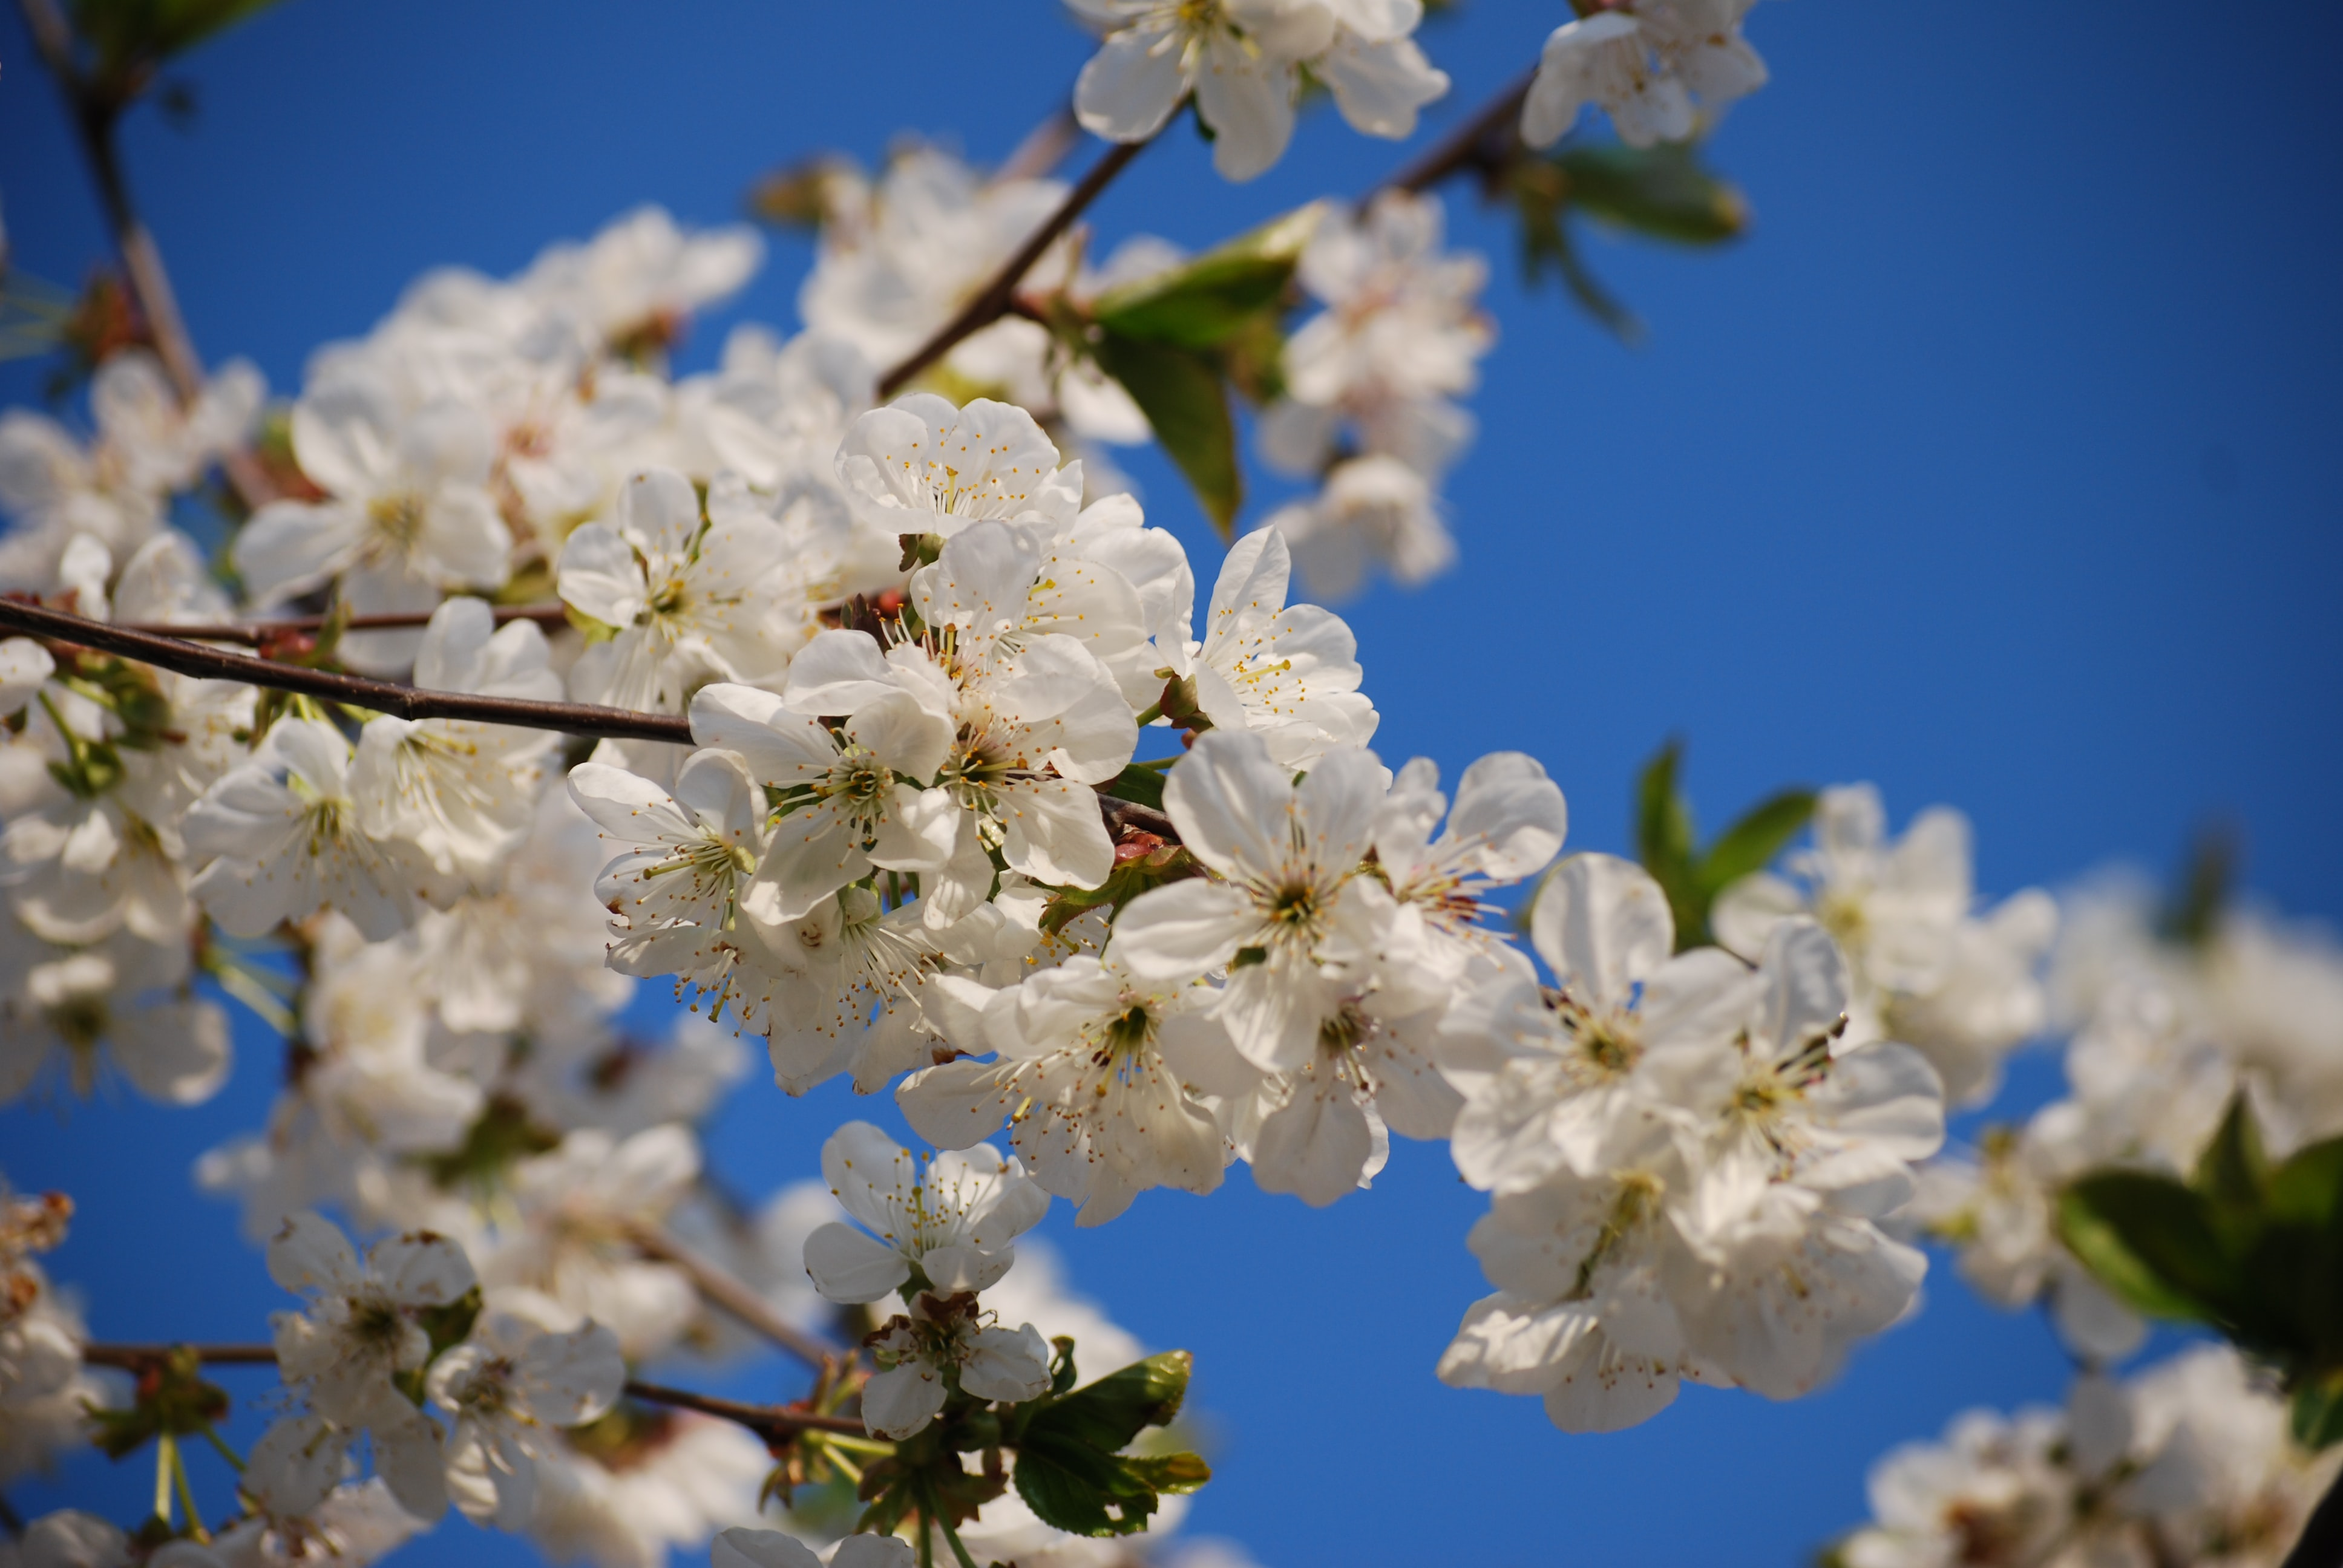 Close up of white blossom on branch against brilliant clear blue sky in Spring